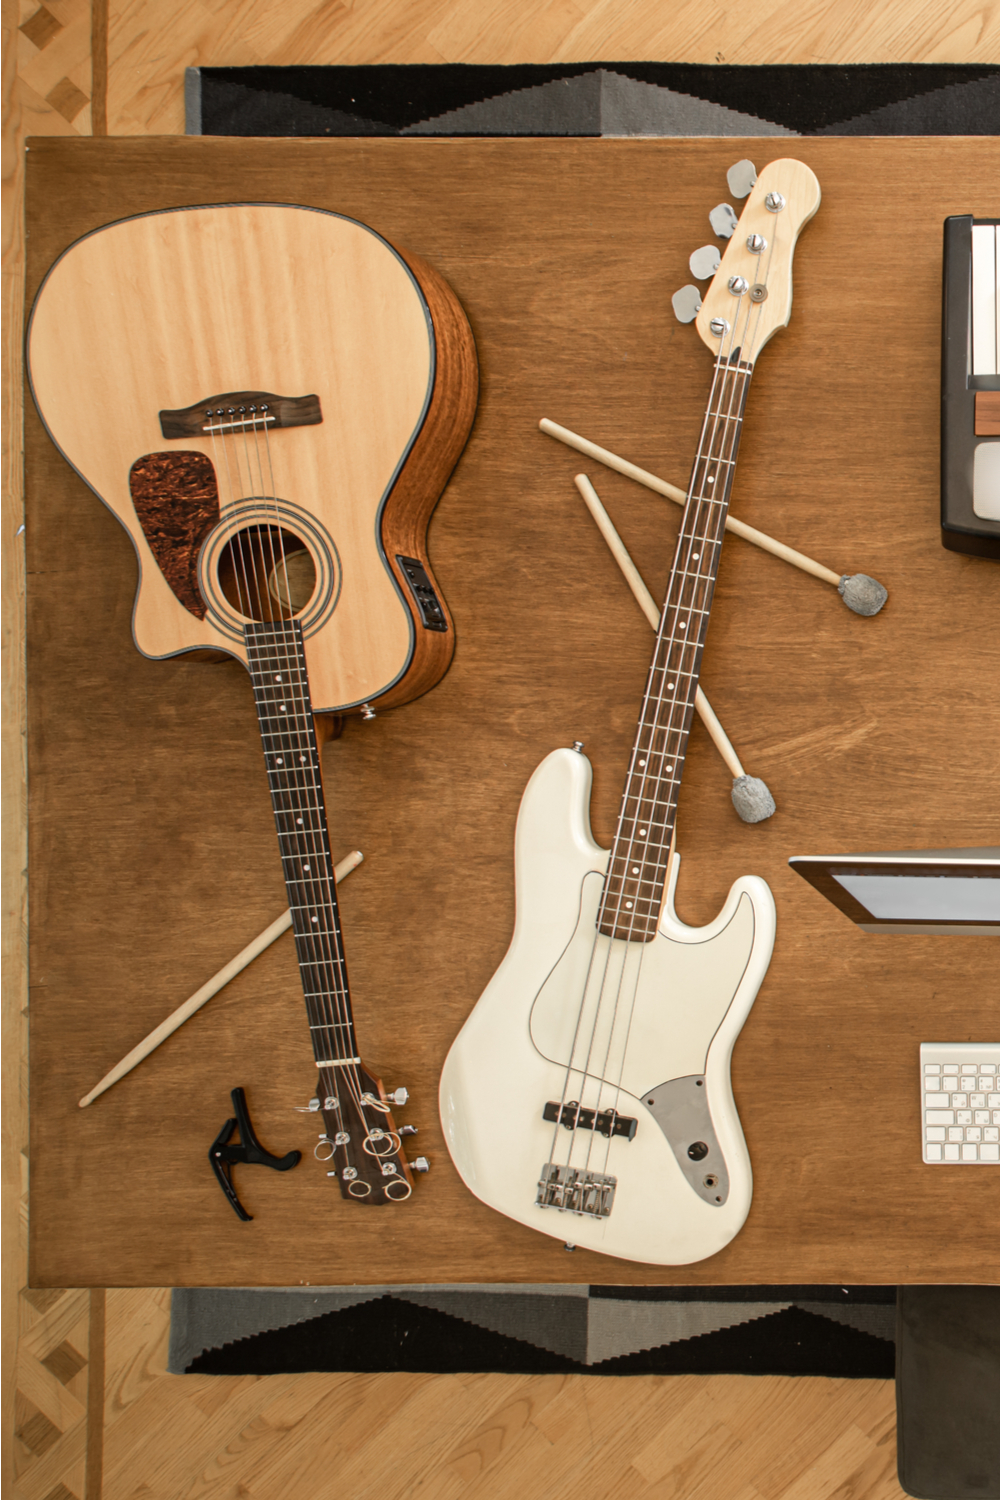 Bass vs. Guitar - Tuning and Sound